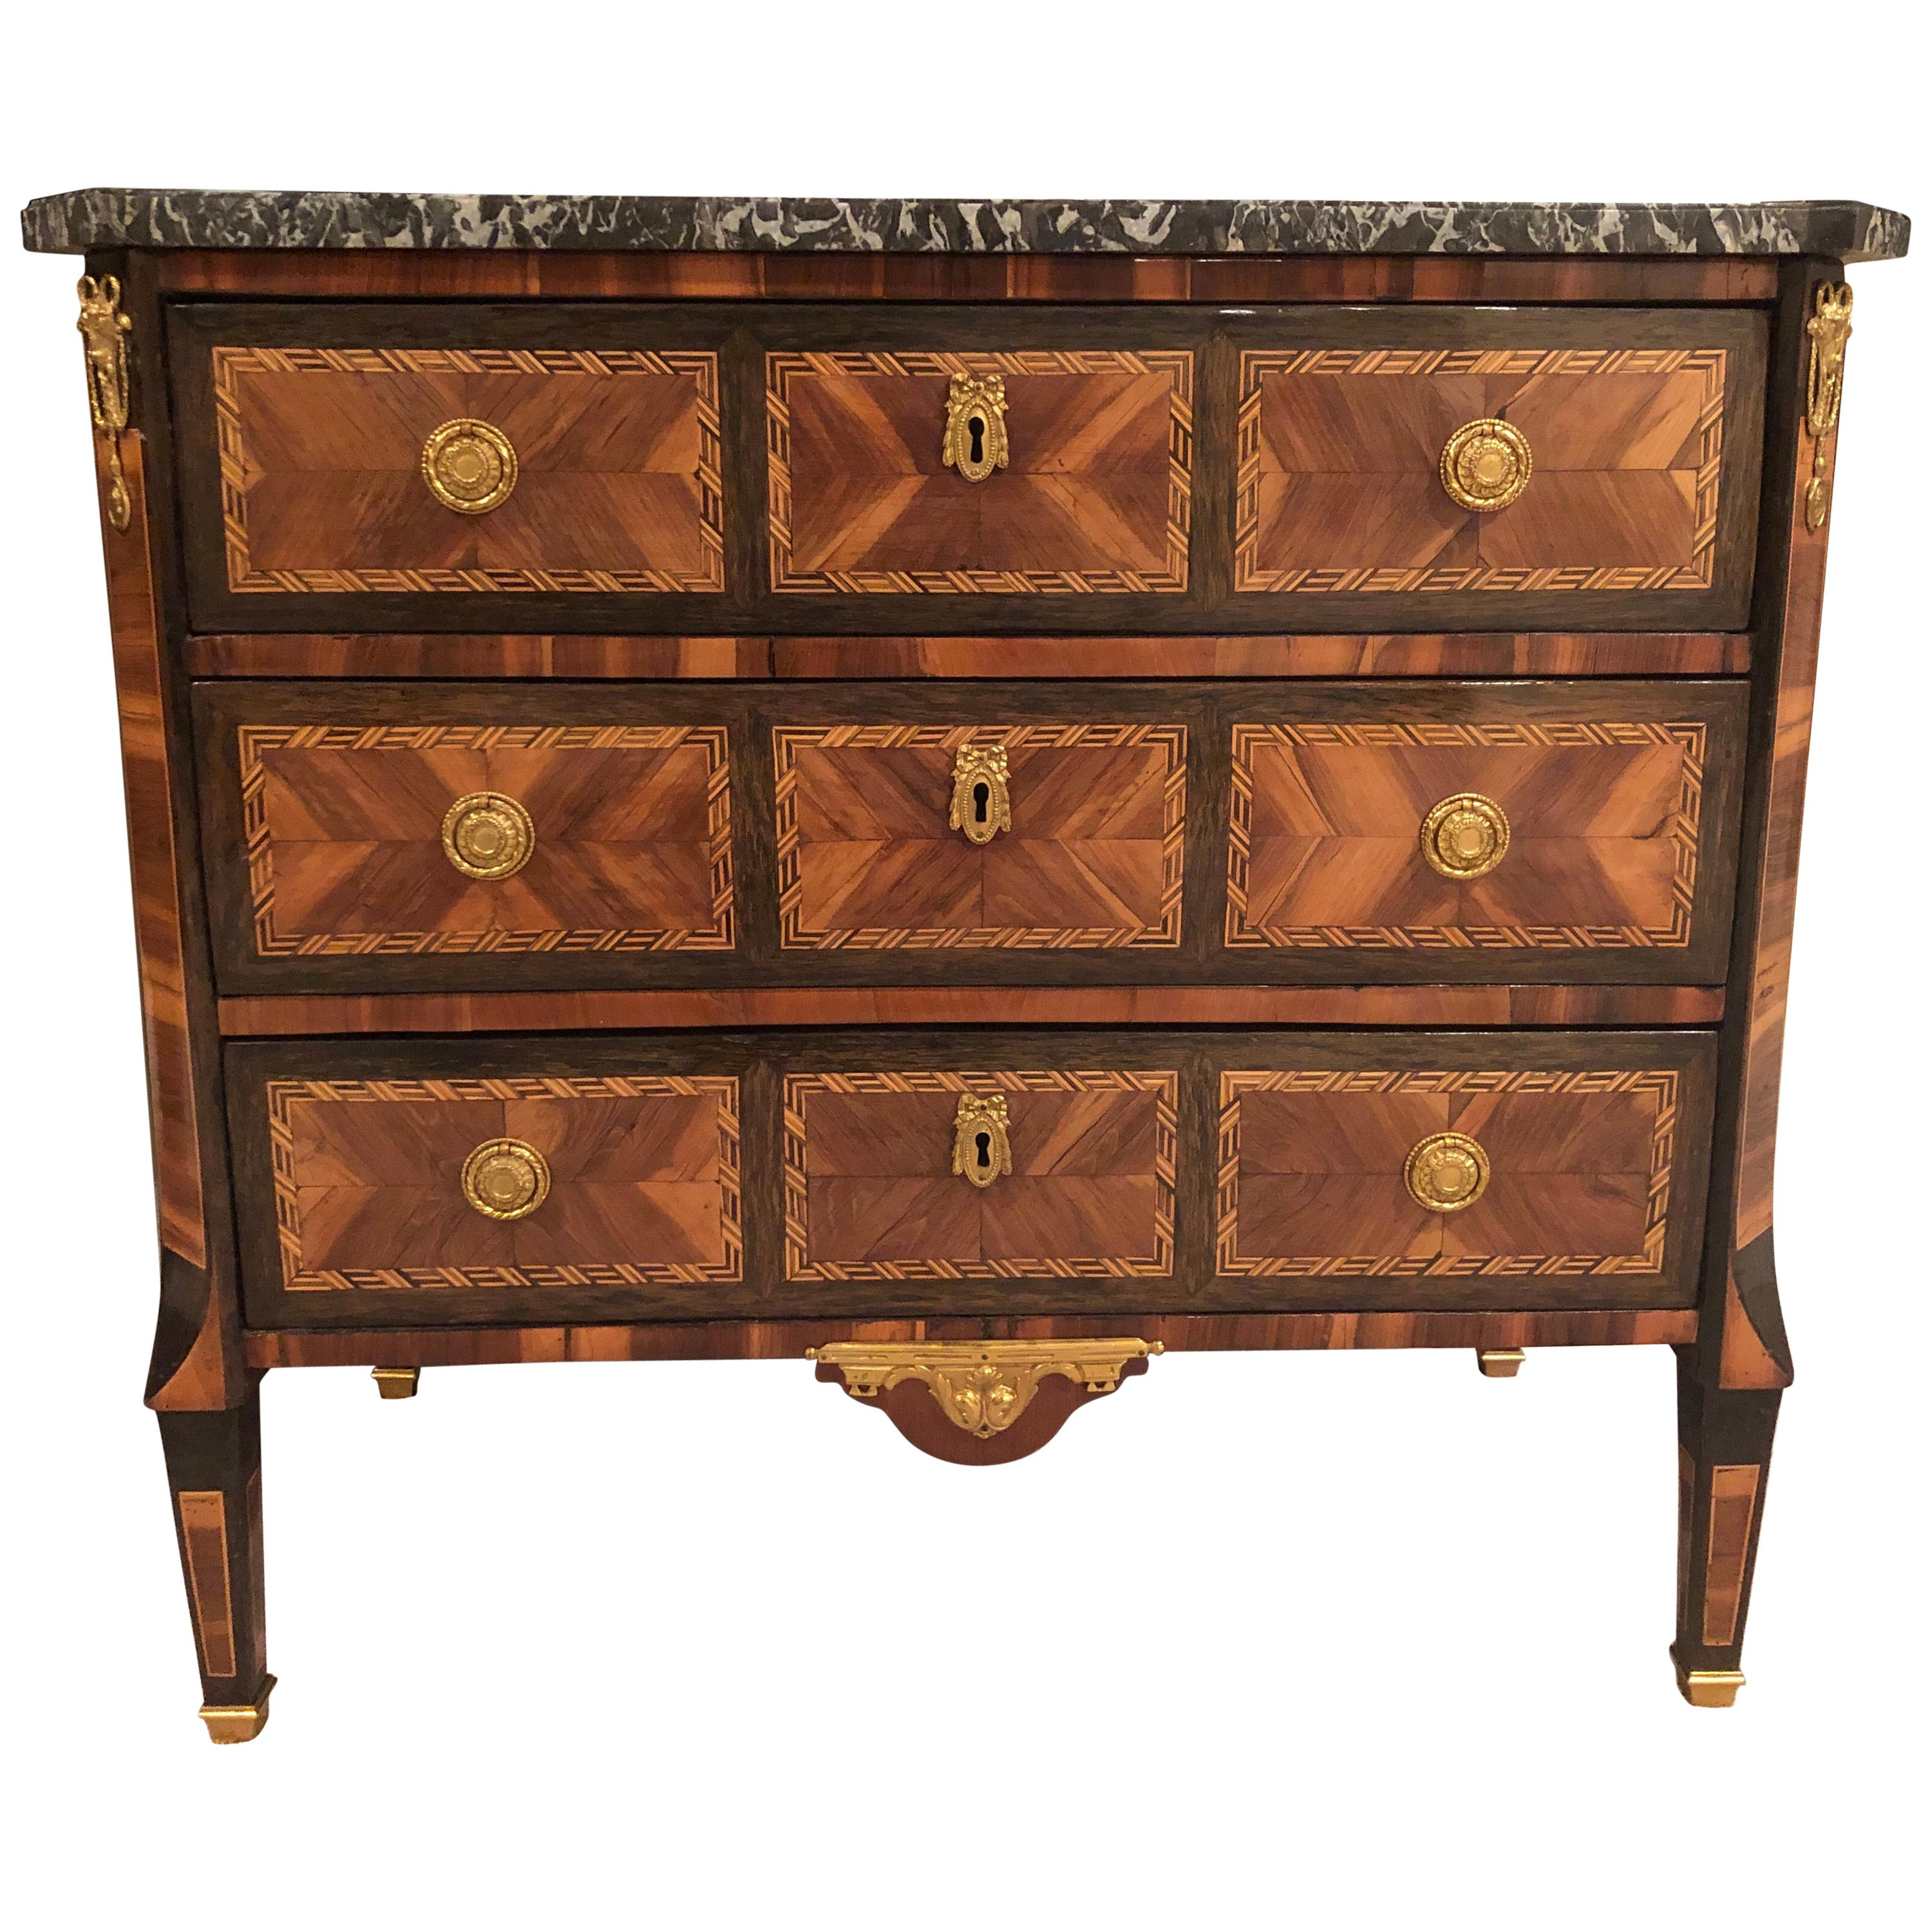 Transition Chest of Drawers, France, 1780